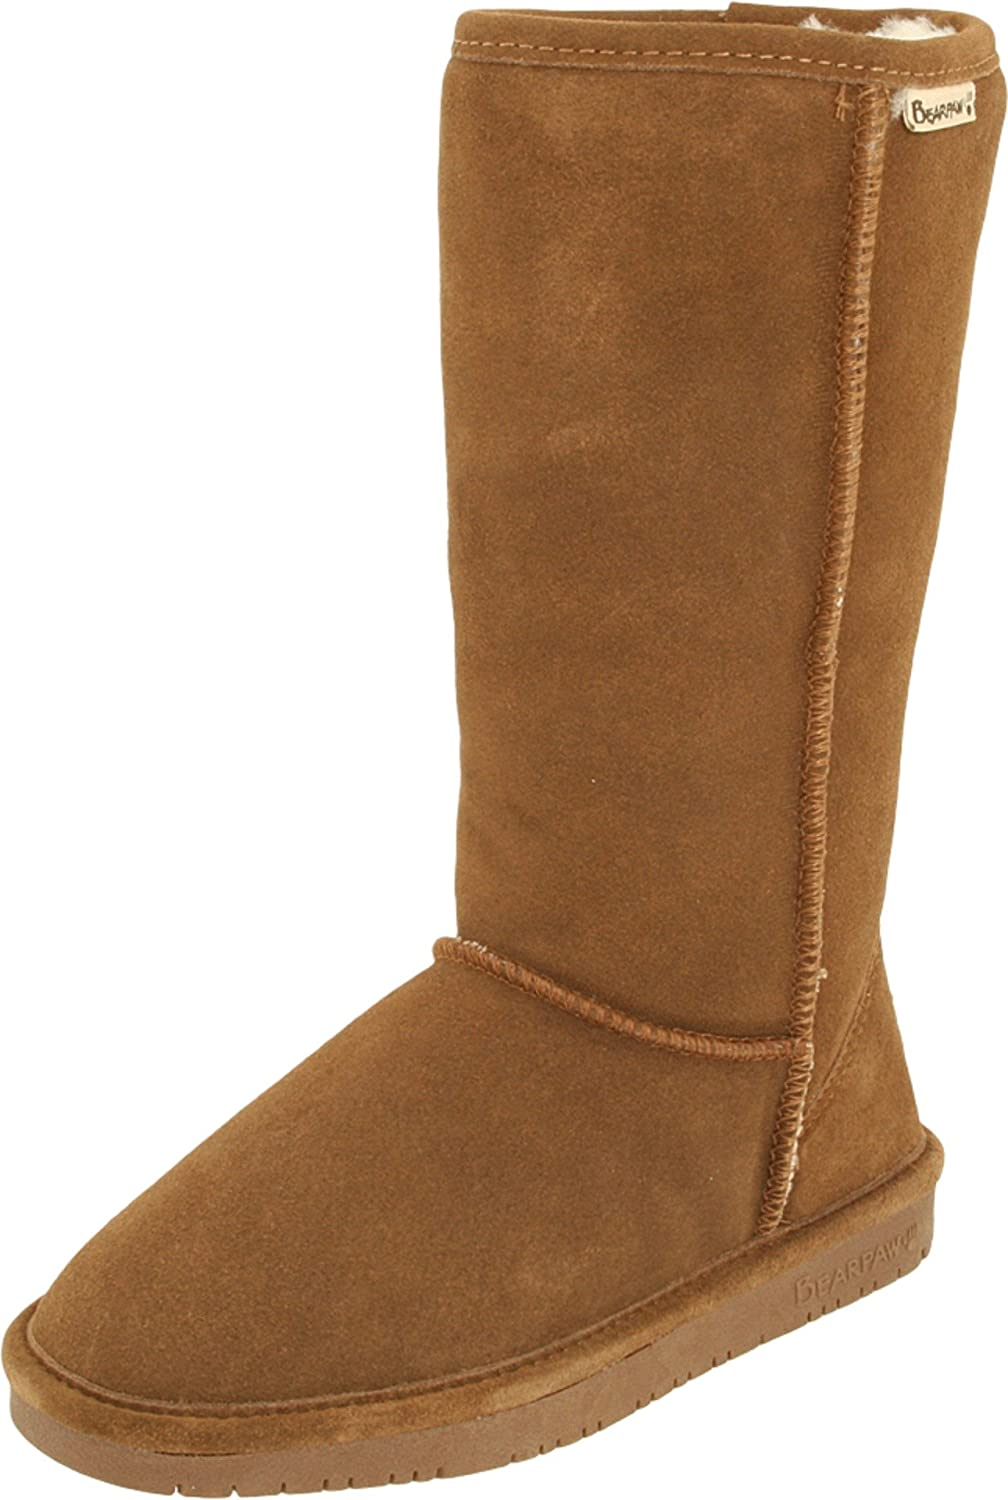 BEARPAW Women's Emma Tall Mid Calf Boot B01MXD8NVC 41 M EU|Hickory